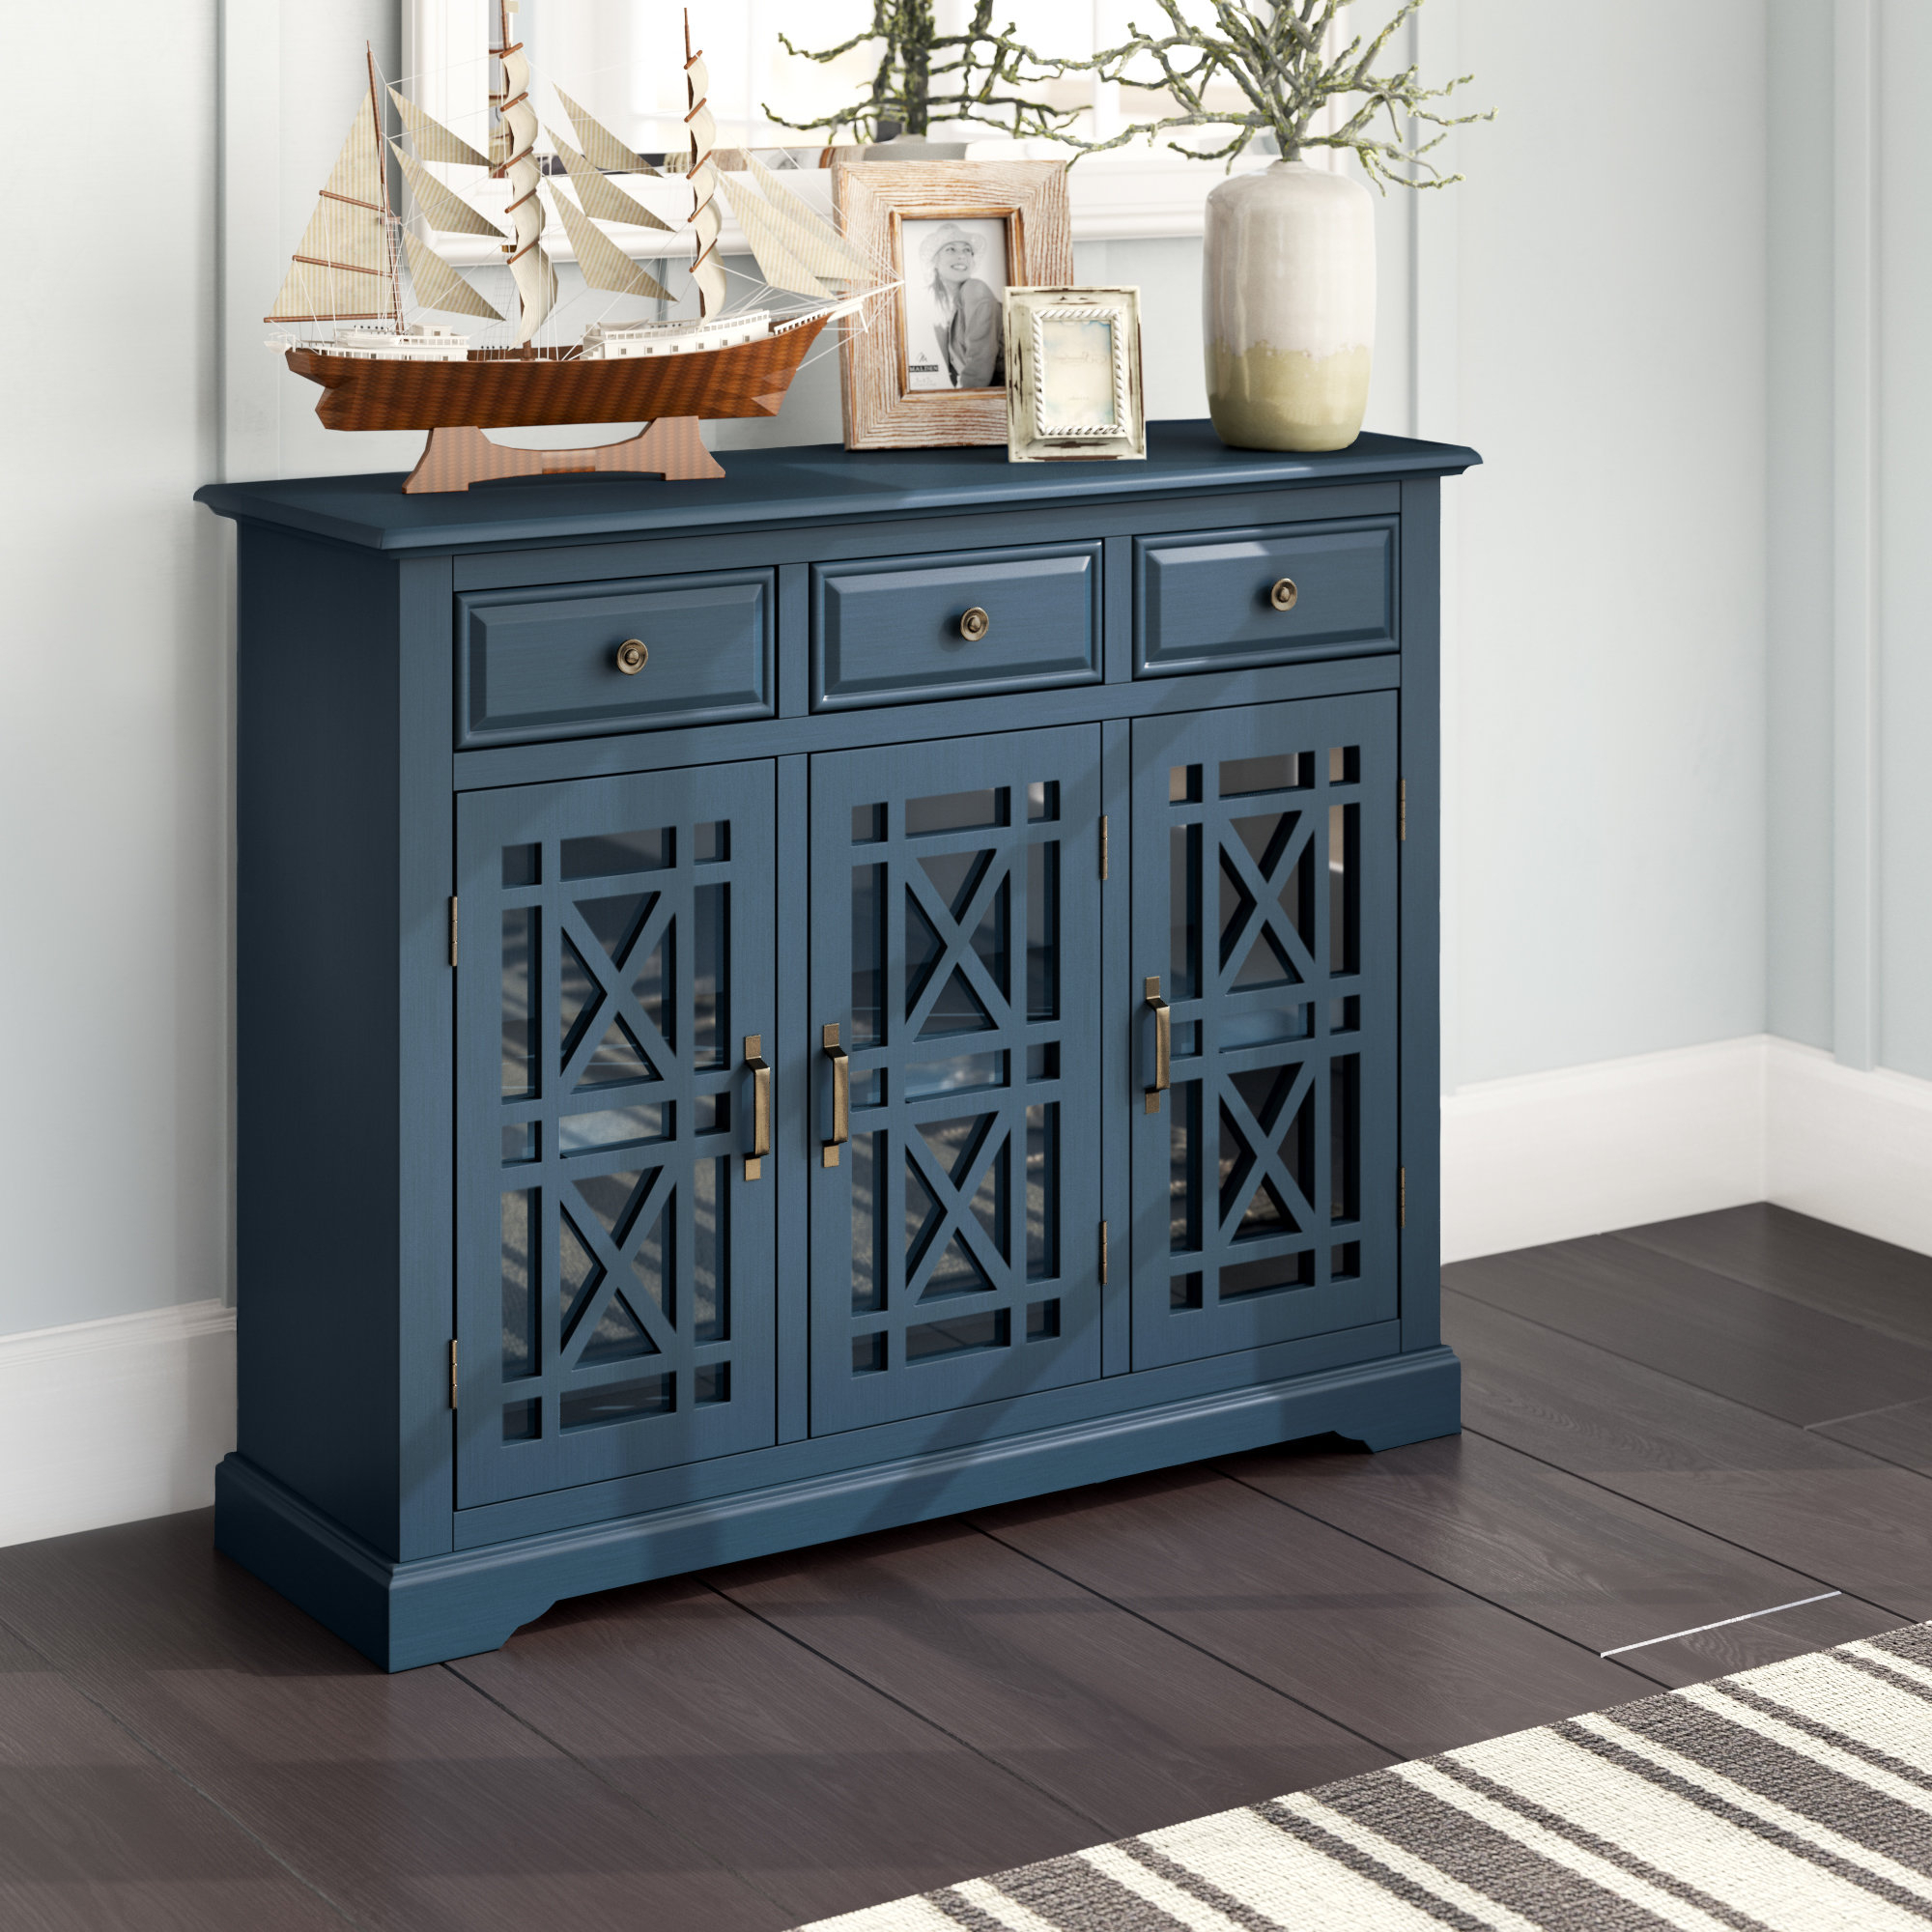 Sideboards & Buffet Tables You'll Love In 2019 | Wayfair With Regard To Longley Sideboards (View 19 of 20)